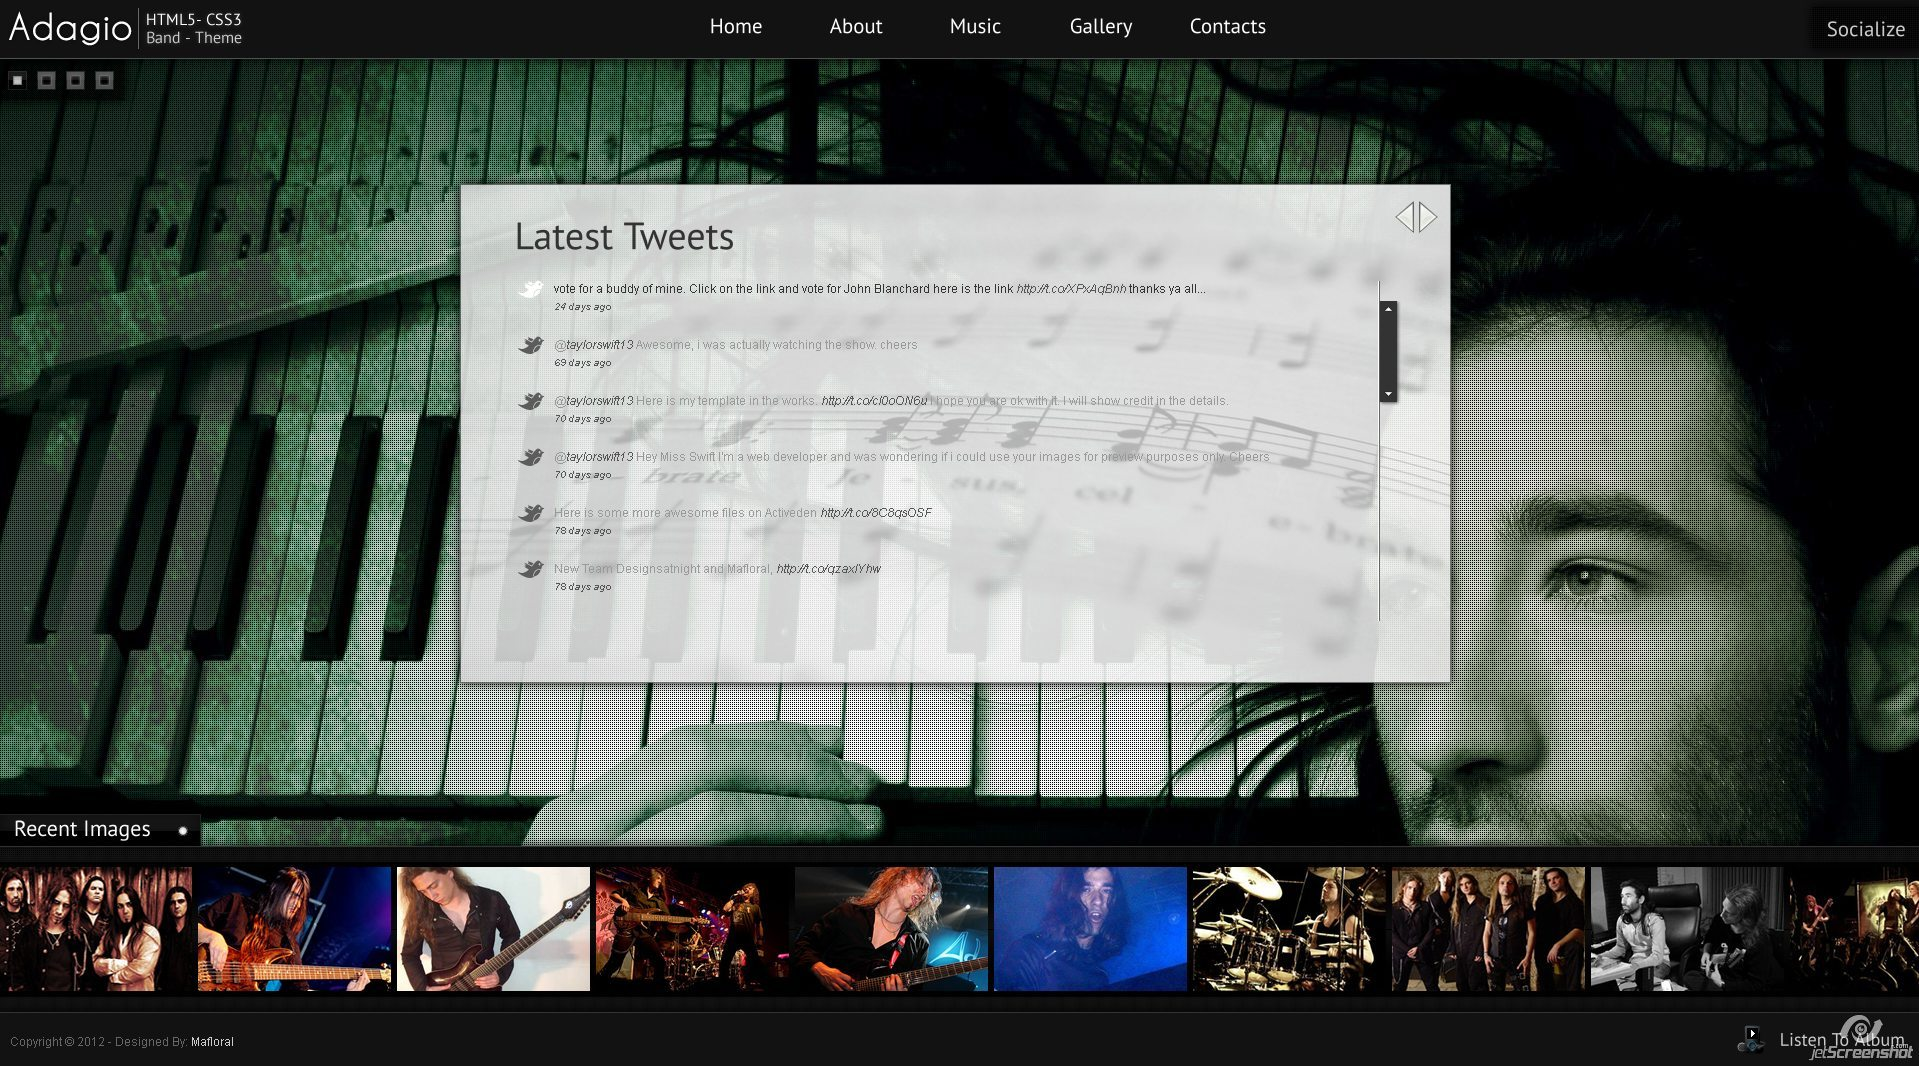 Adagio Musician Template - HTML5 - CSS3 - Tweets Page